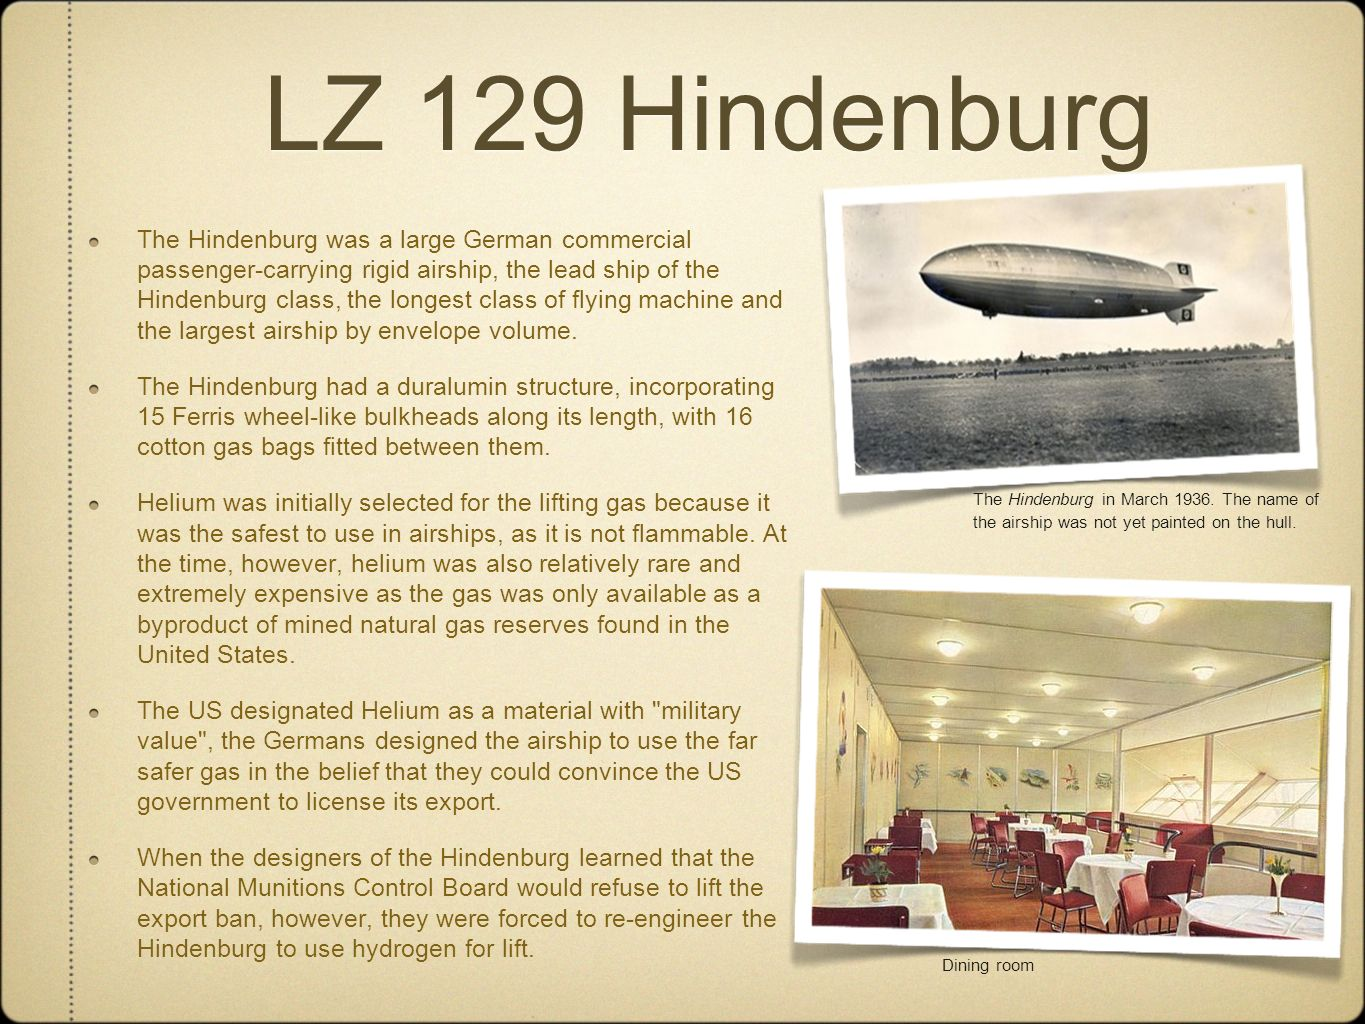 LZ 129 Hindenburg The Hindenburg in March 1936. The name of the airship was not yet painted on the hull. Dining room The Hindenburg was a large German